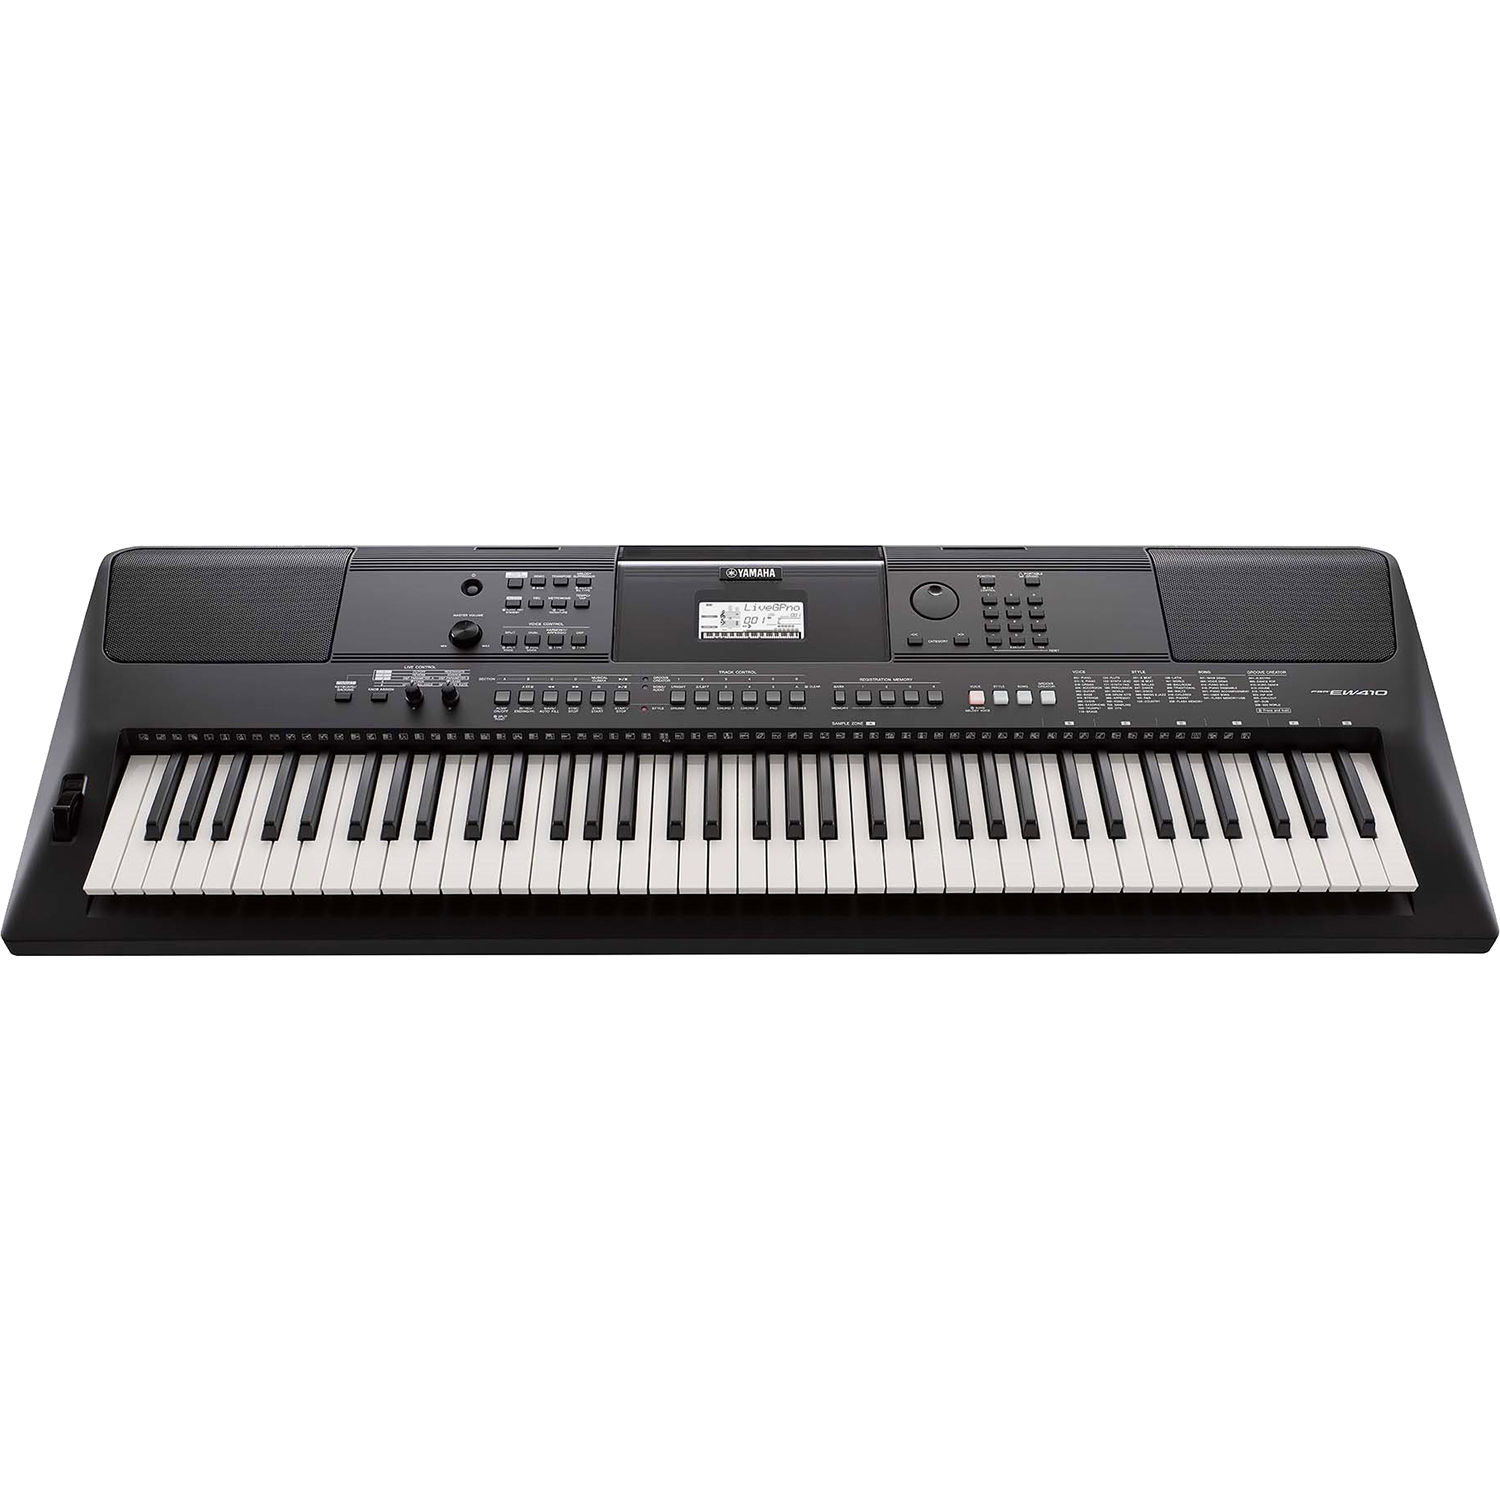 yamaha psr ew410 76 key portable keyboard psrew410 b h photo rh bhphotovideo com Clip Art User Guide Example User Guide